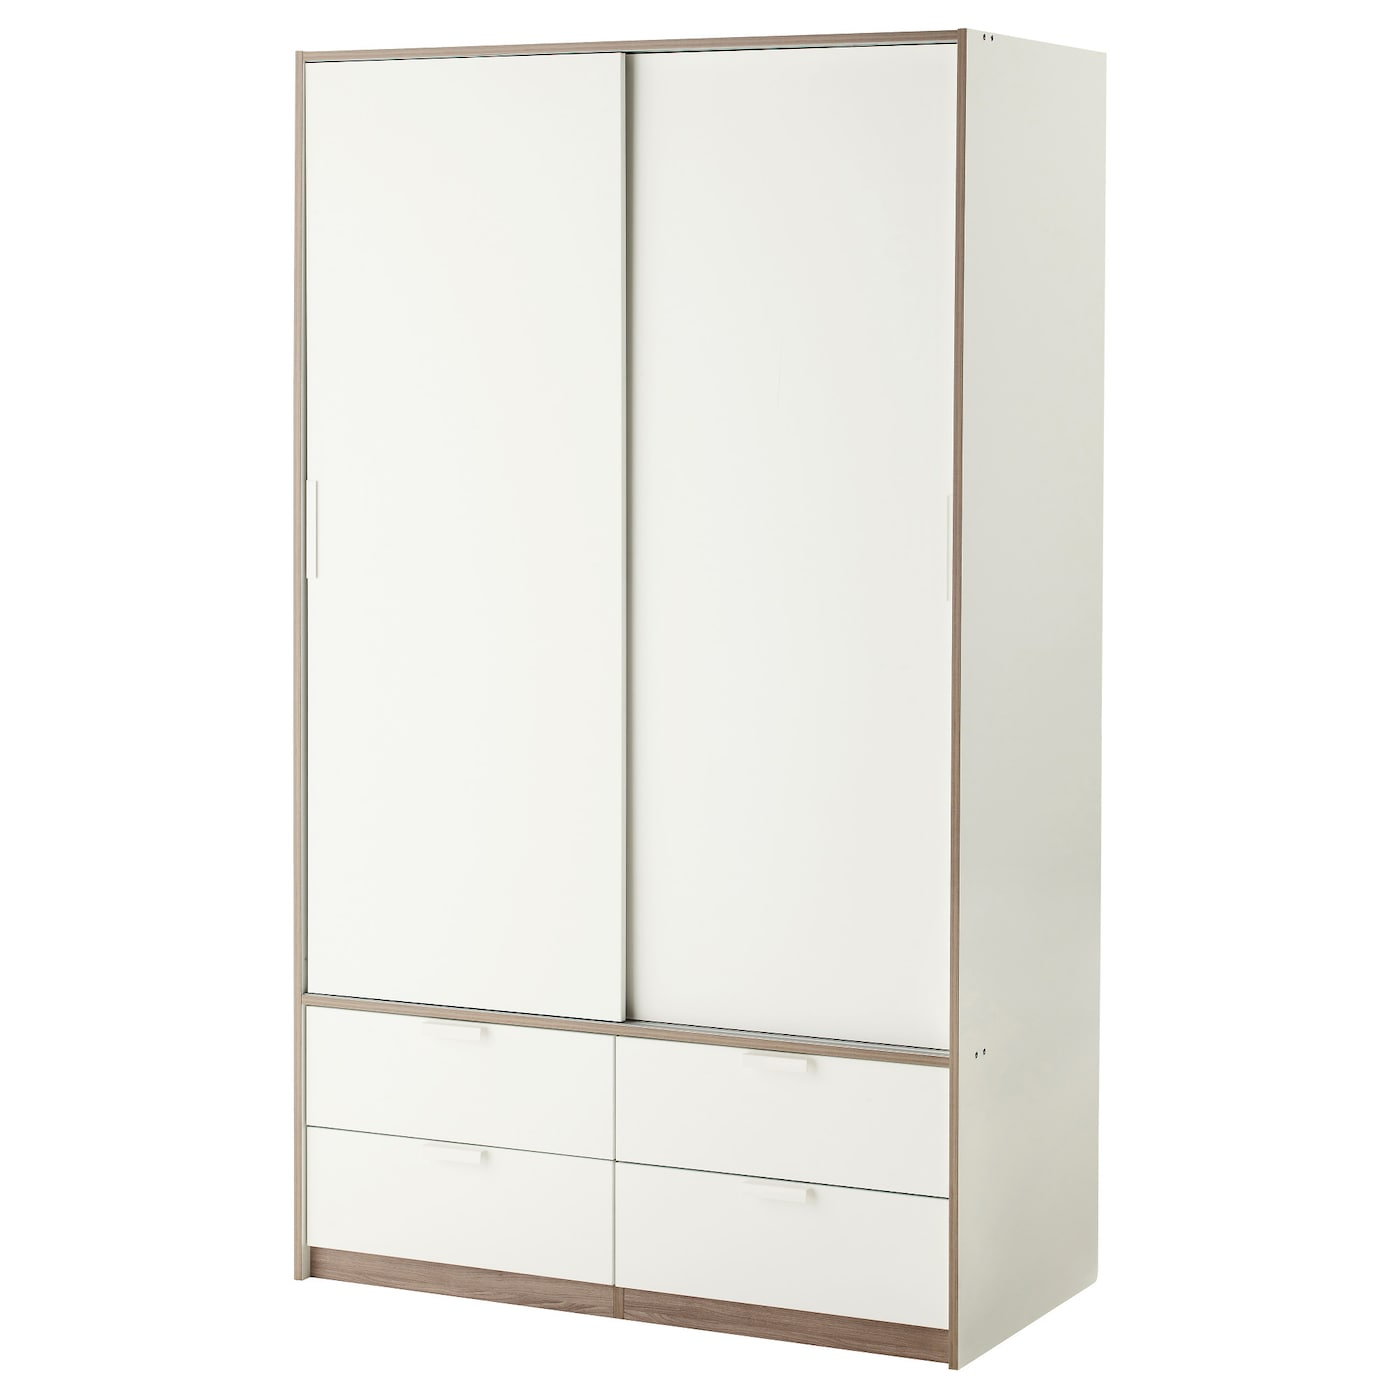 IKEA TRYSIL Wardrobe W Sliding Doors/4 Drawers Smooth Running Drawers With  Pull Out